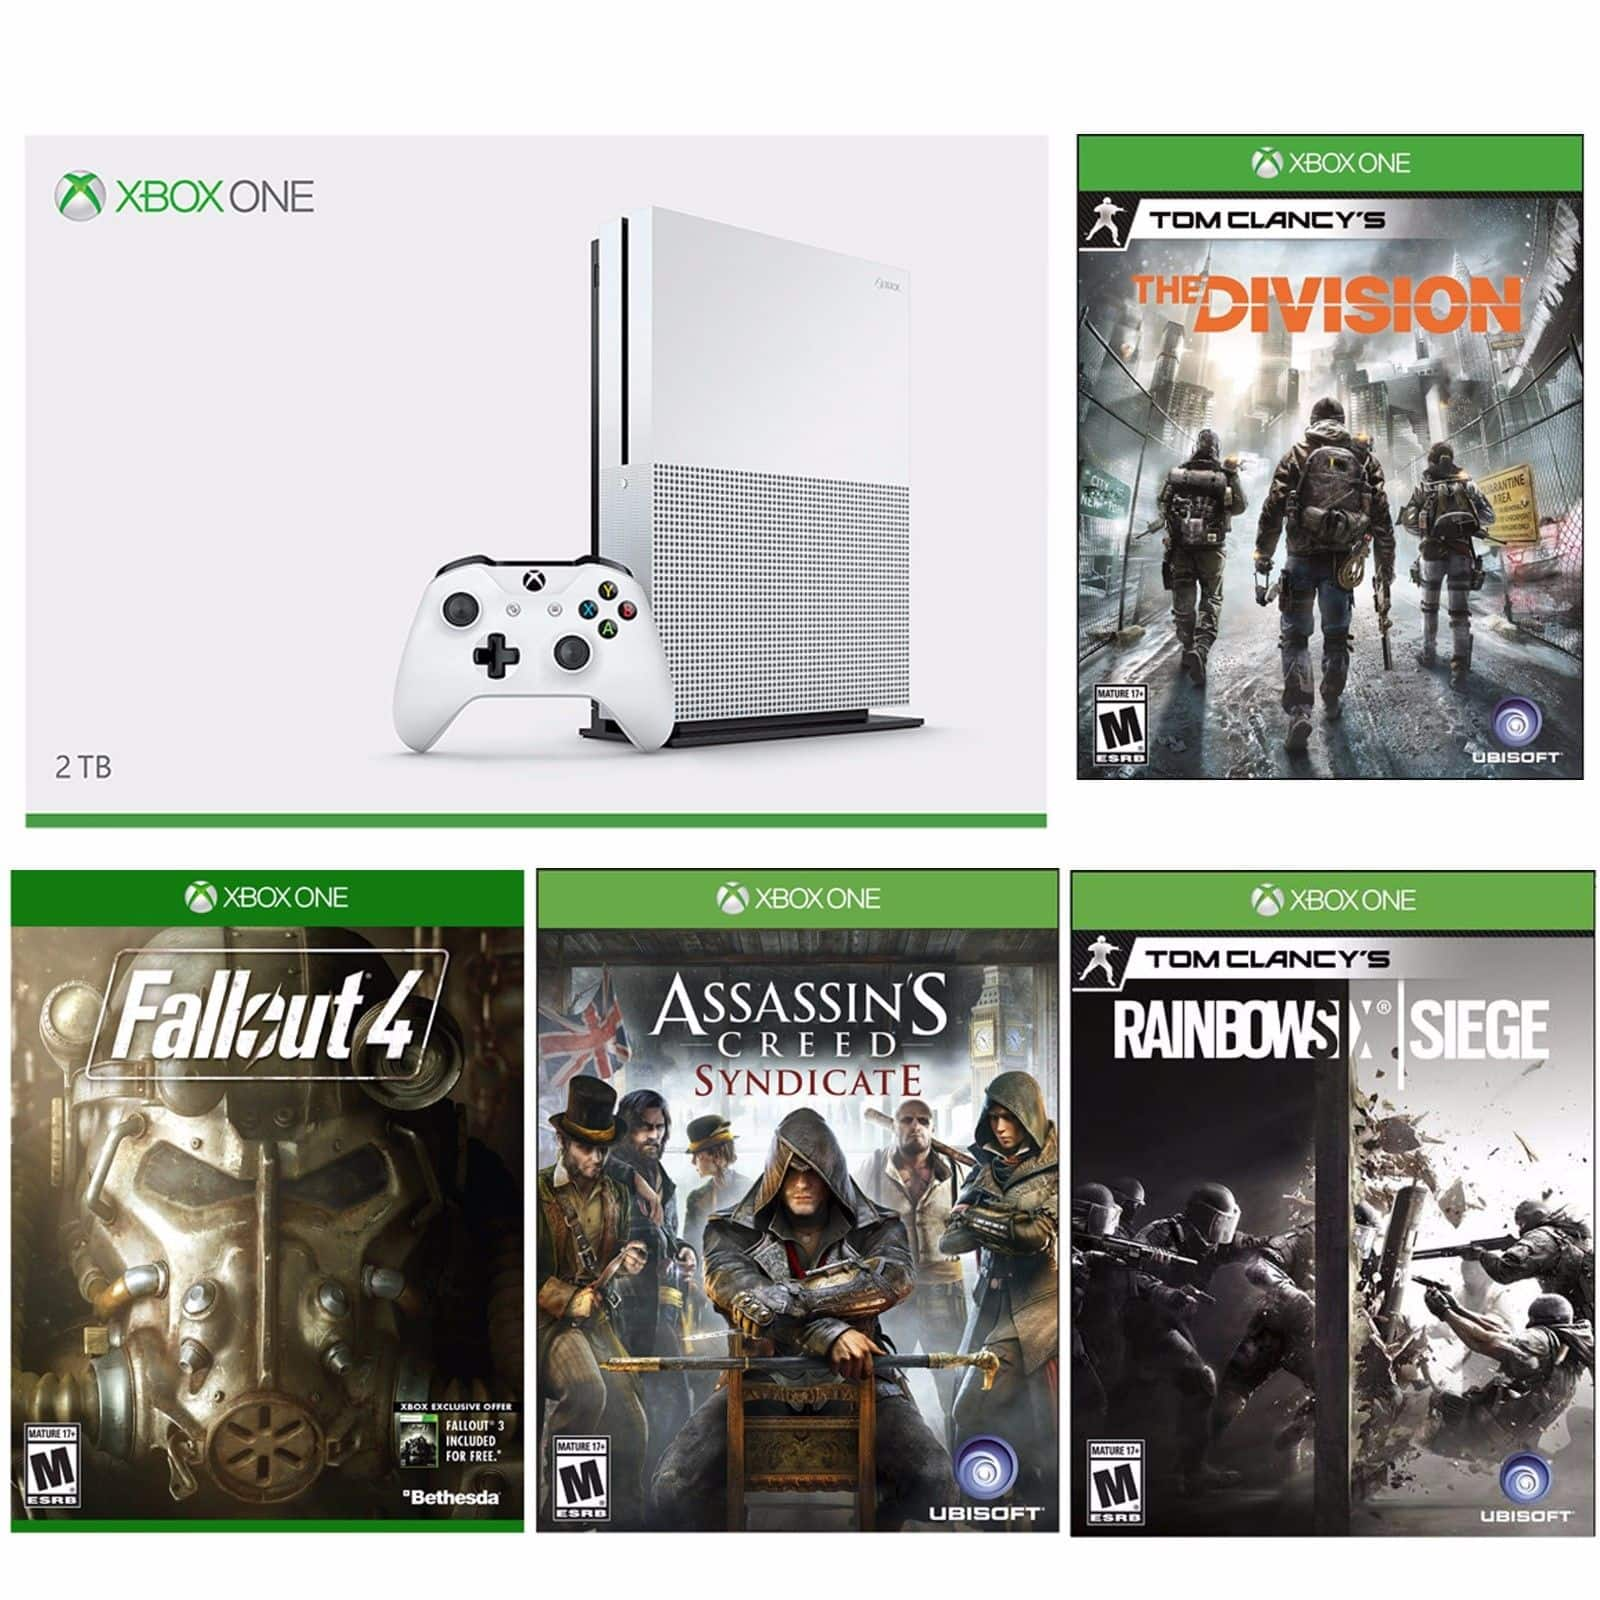 *LIVE* Xbox One S 2TB Console Launch Edition + Tom Clancy's Division + AC Syndicate + Fallout 4 + Six Siege for $400 + Free Shipping (eBay Daily Deal)